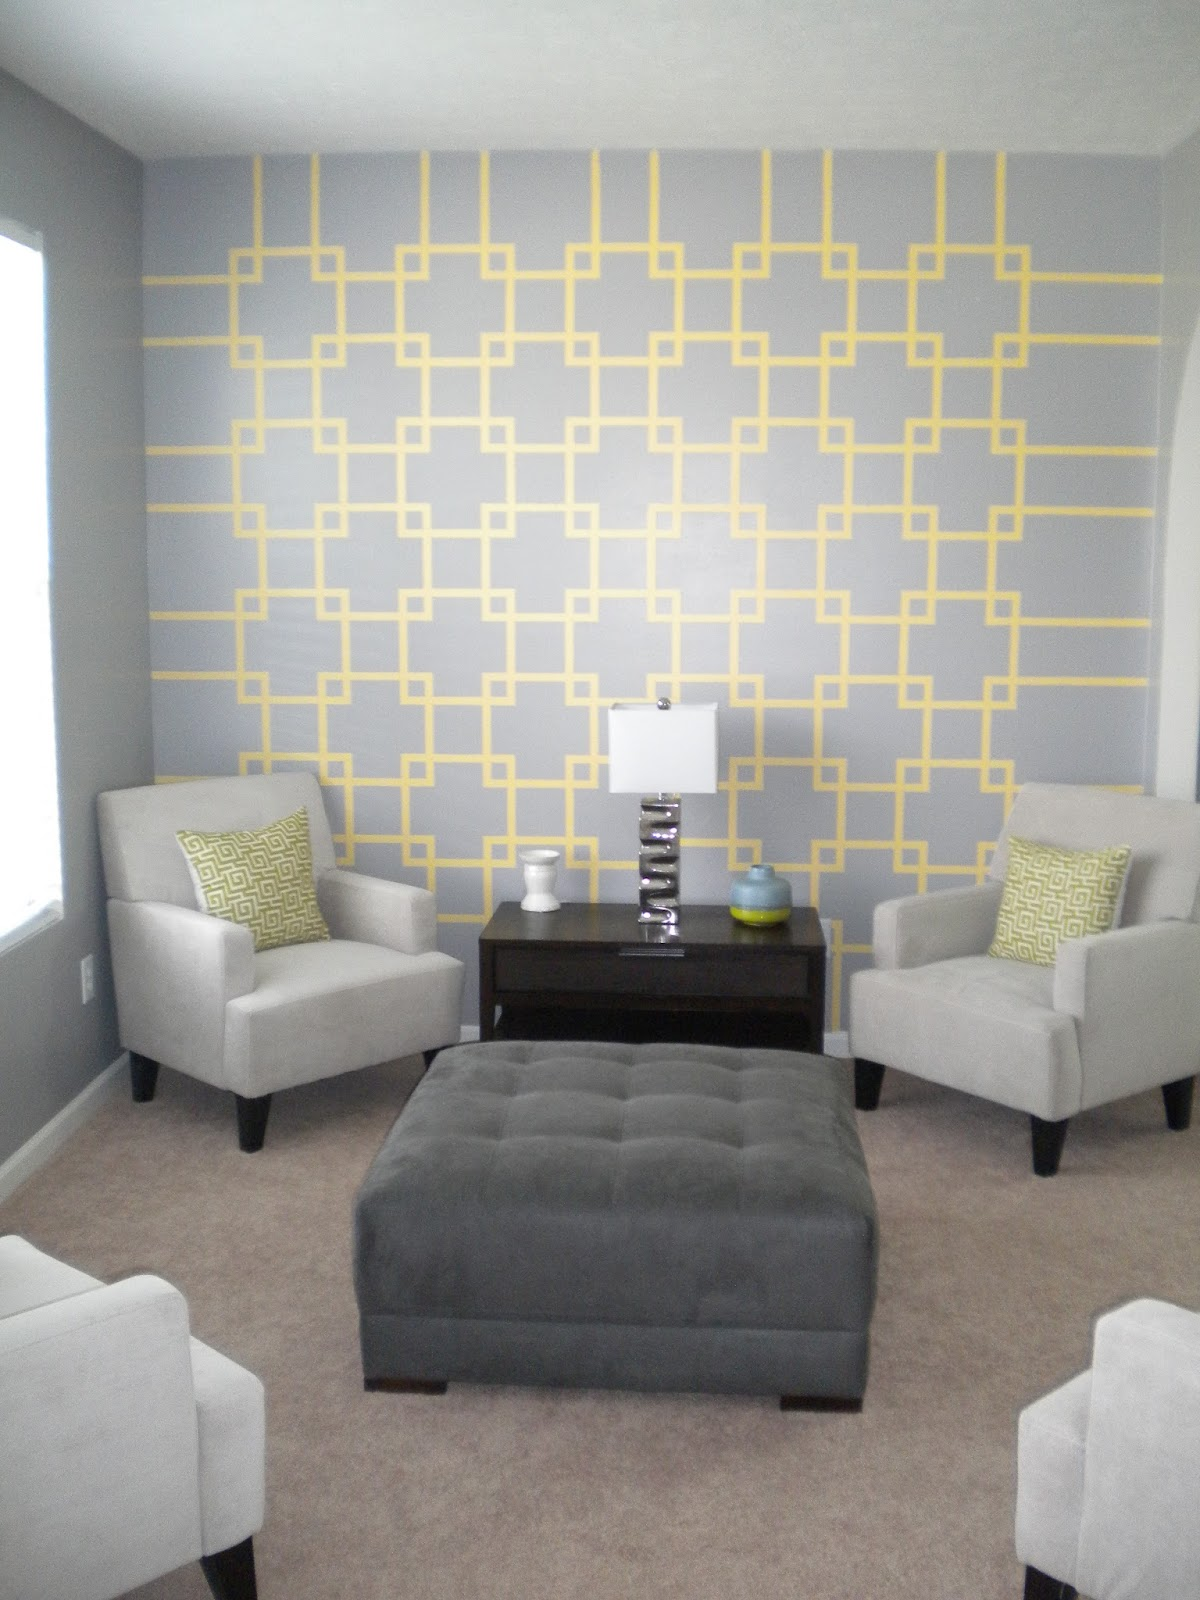 fabulous wall patterns plaid argyle chevron more no stencil